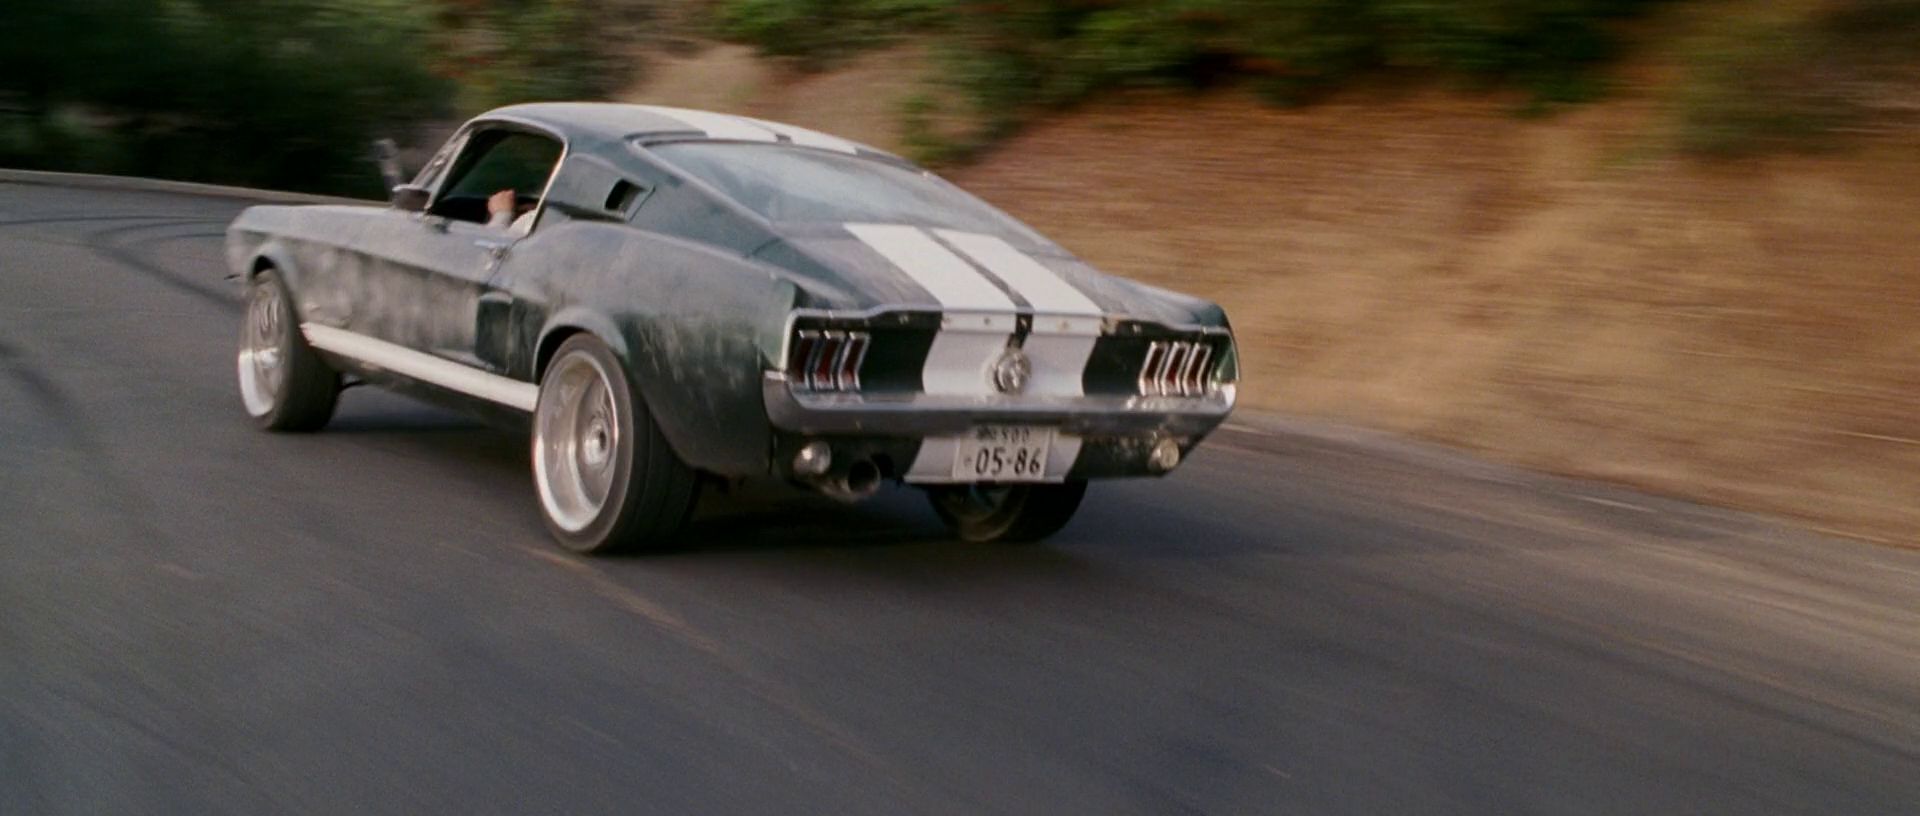 Image - 1967 Mustang - Tokyo Drift.png | The Fast and the Furious ...